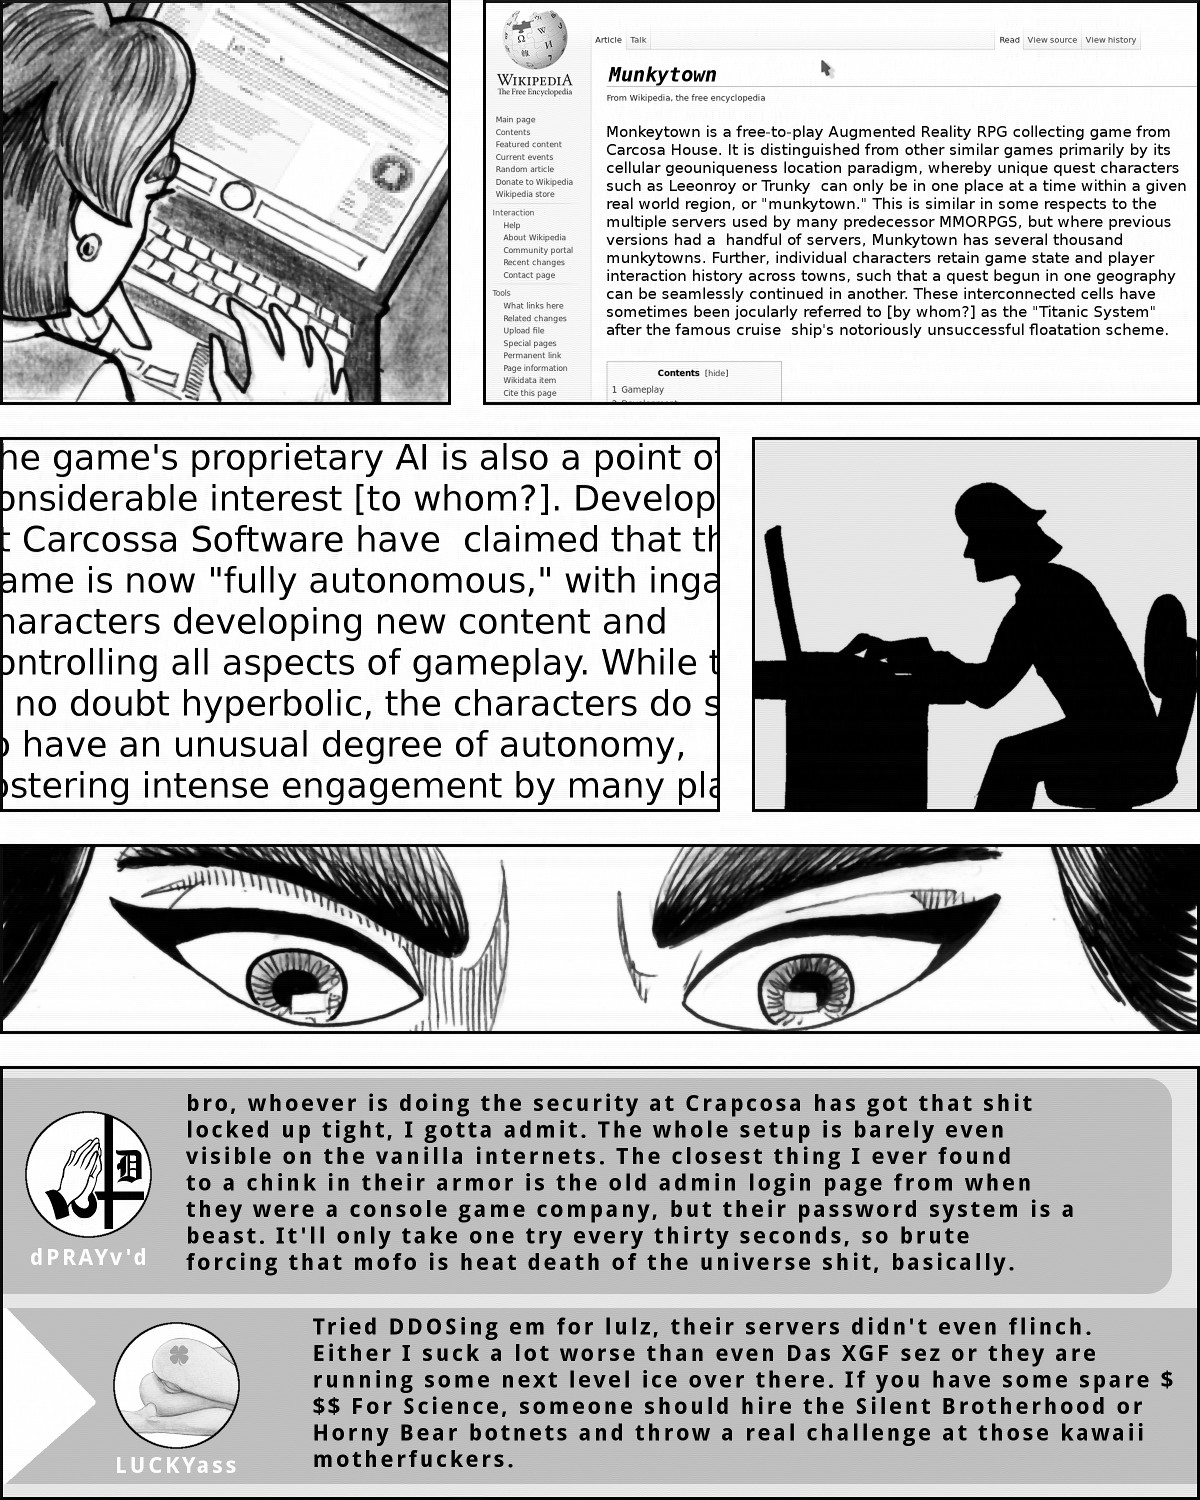 I don't know about you, but I think the idea of 'Carcossa Software' sounds sort of ominous.